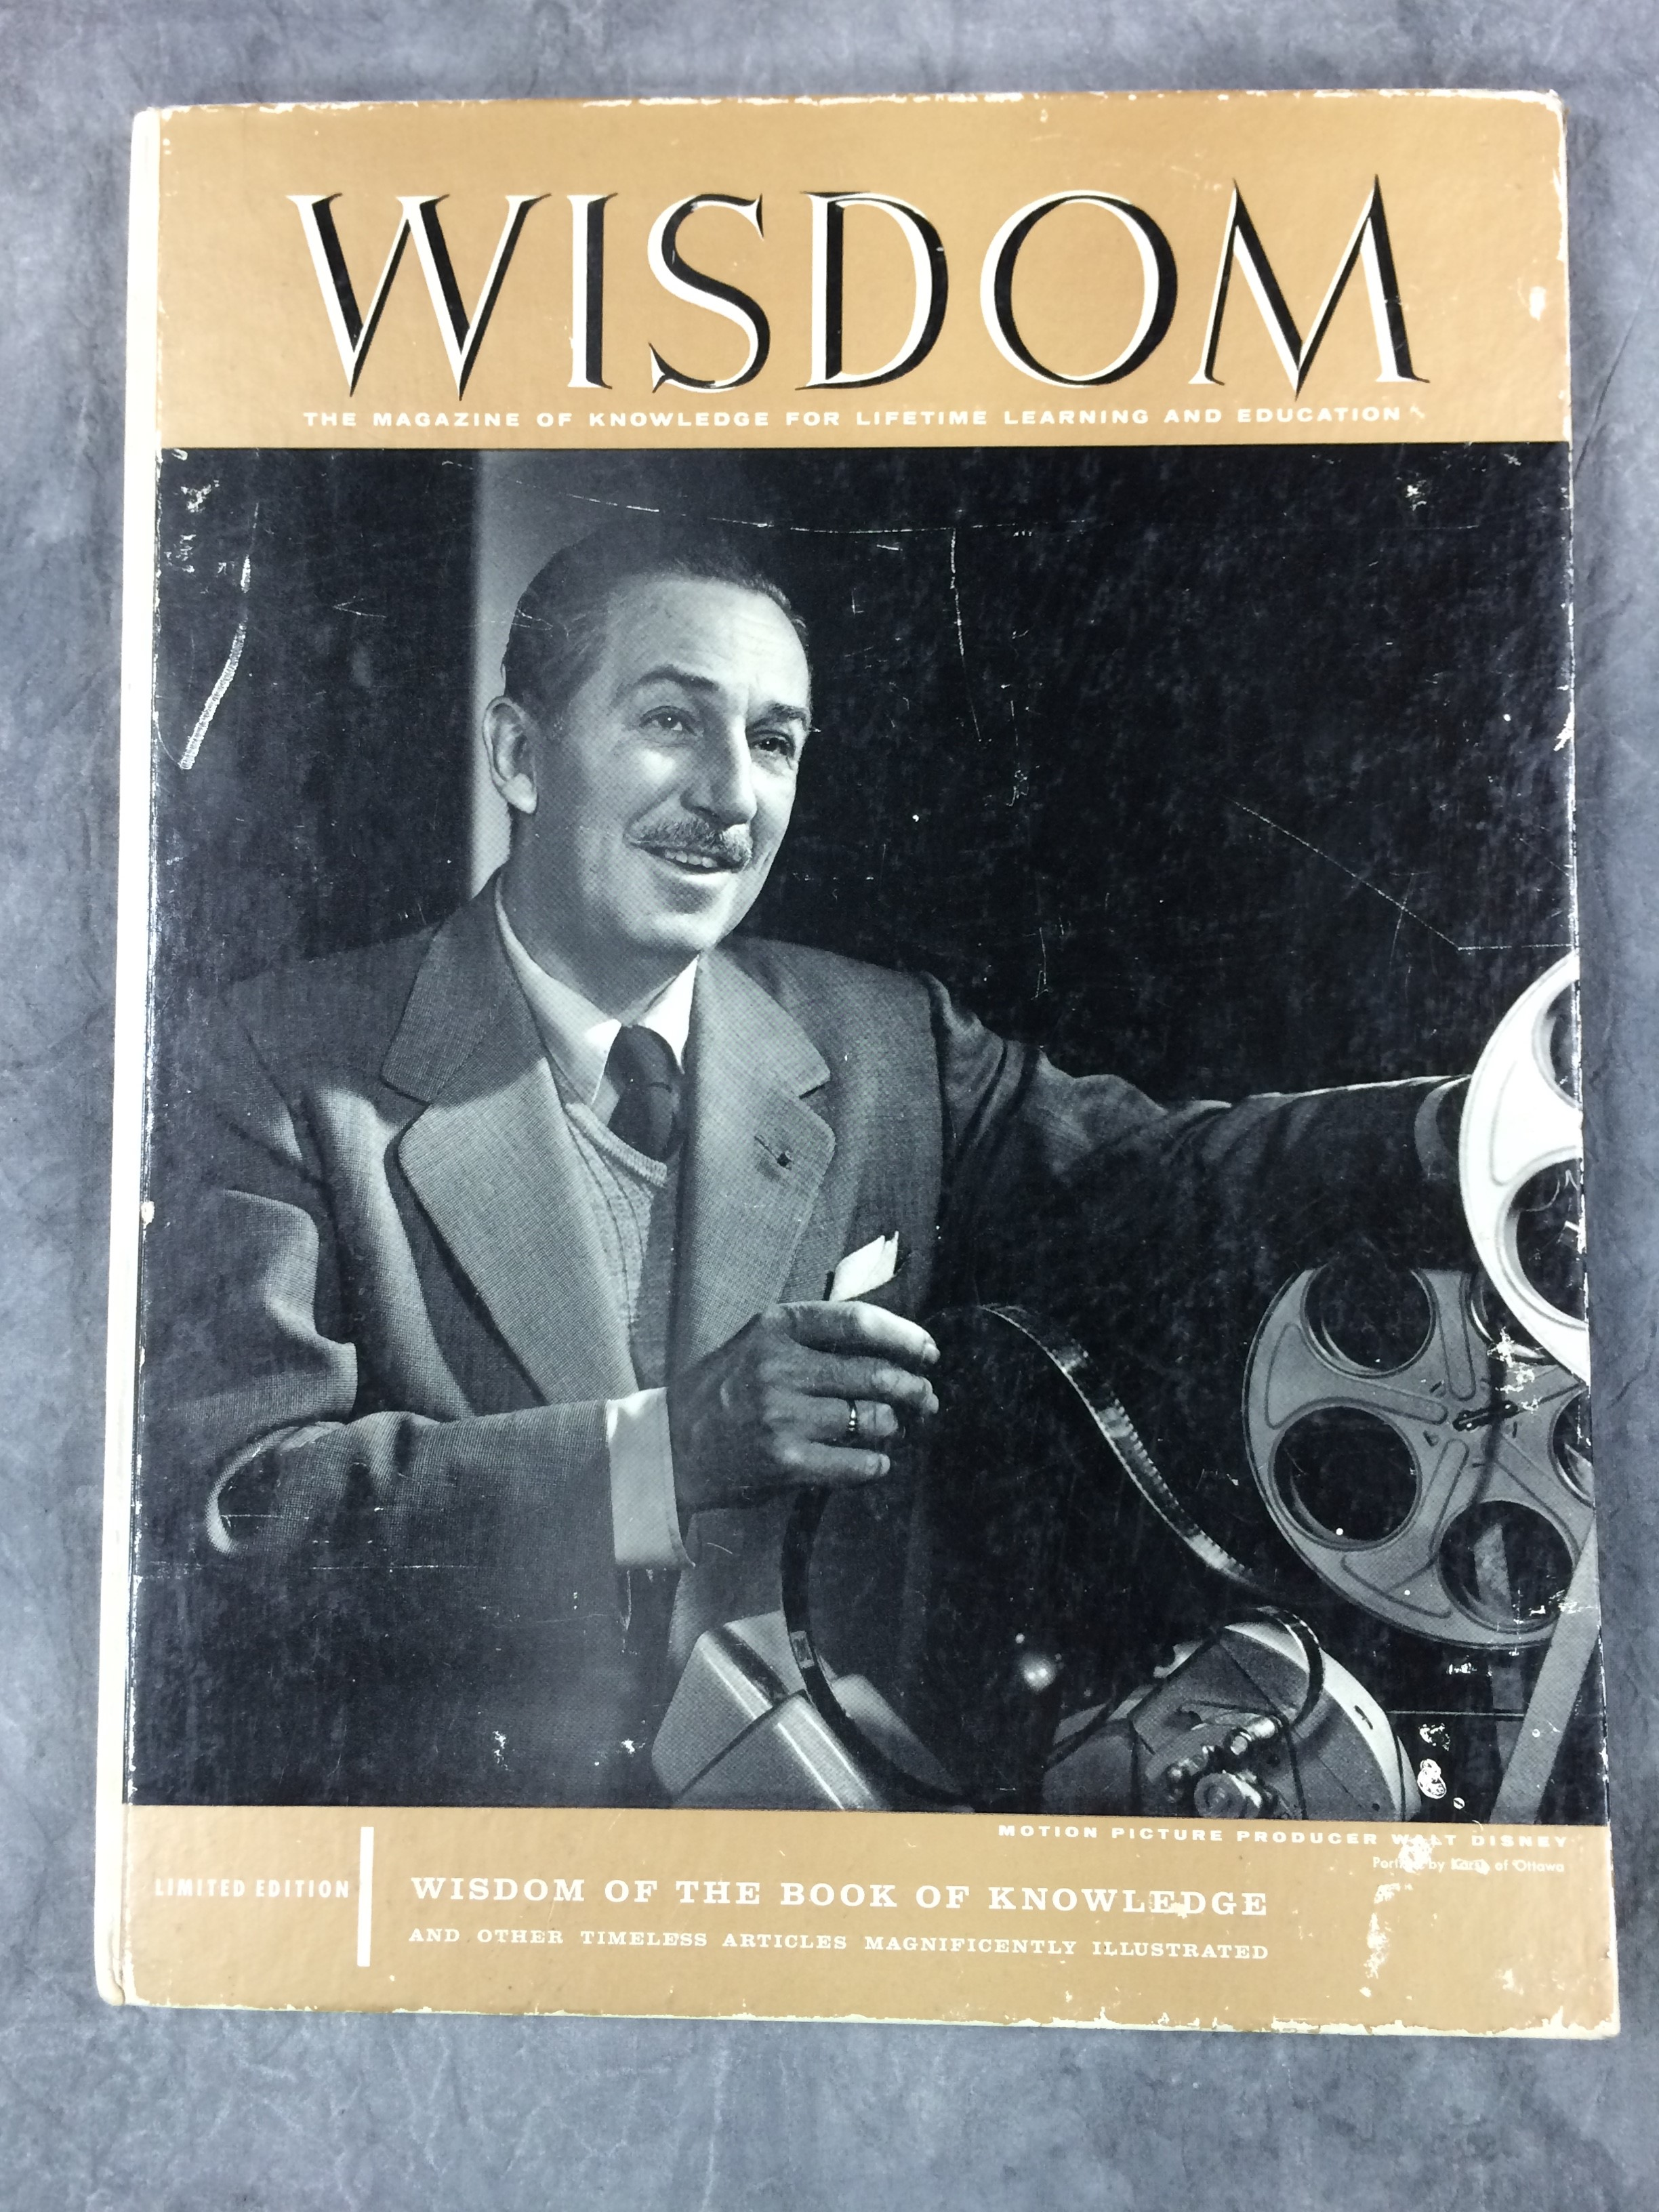 Vintage Wisdom Oracle Bonnie Cehovet: Vintage WISDOM Magazine Vol. 32 Featuring Walt Disney